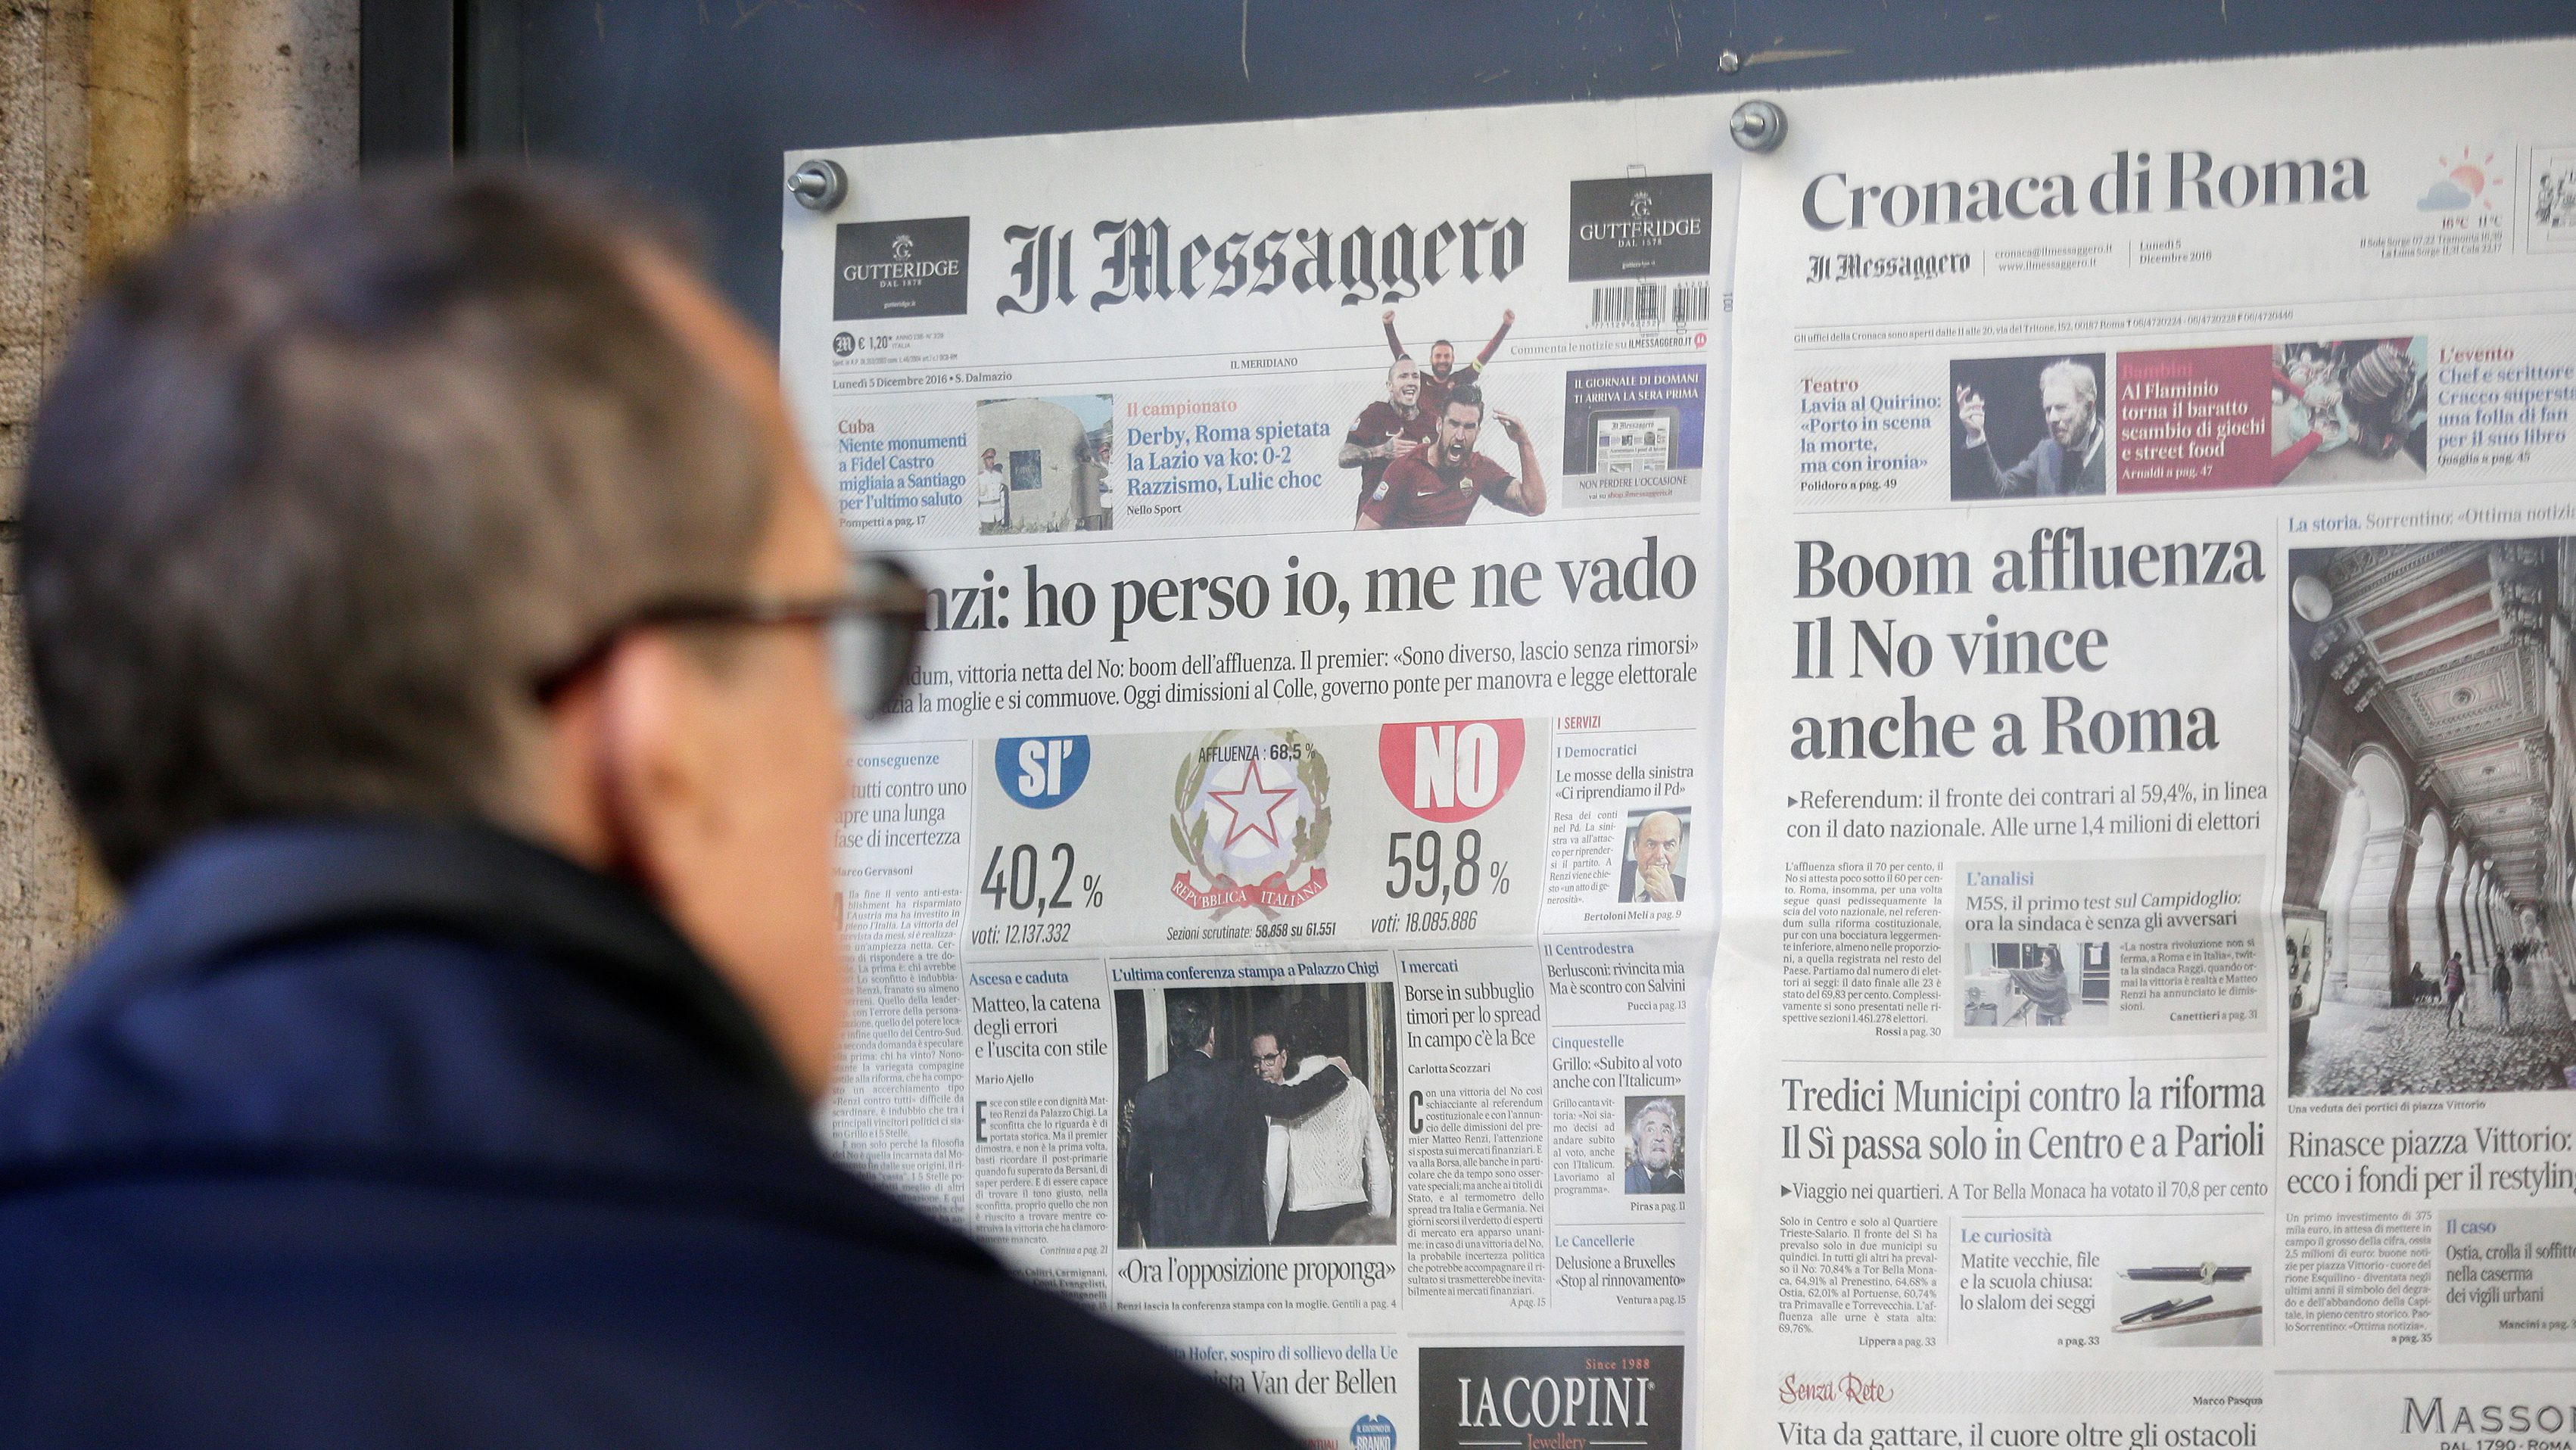 A man reads the Messaggero newspaper in a showcase outside the Messaggero headquarters in Rome, Italy, December 5, 2016. REUTERS/Max Rossi - RC1F3F14F040